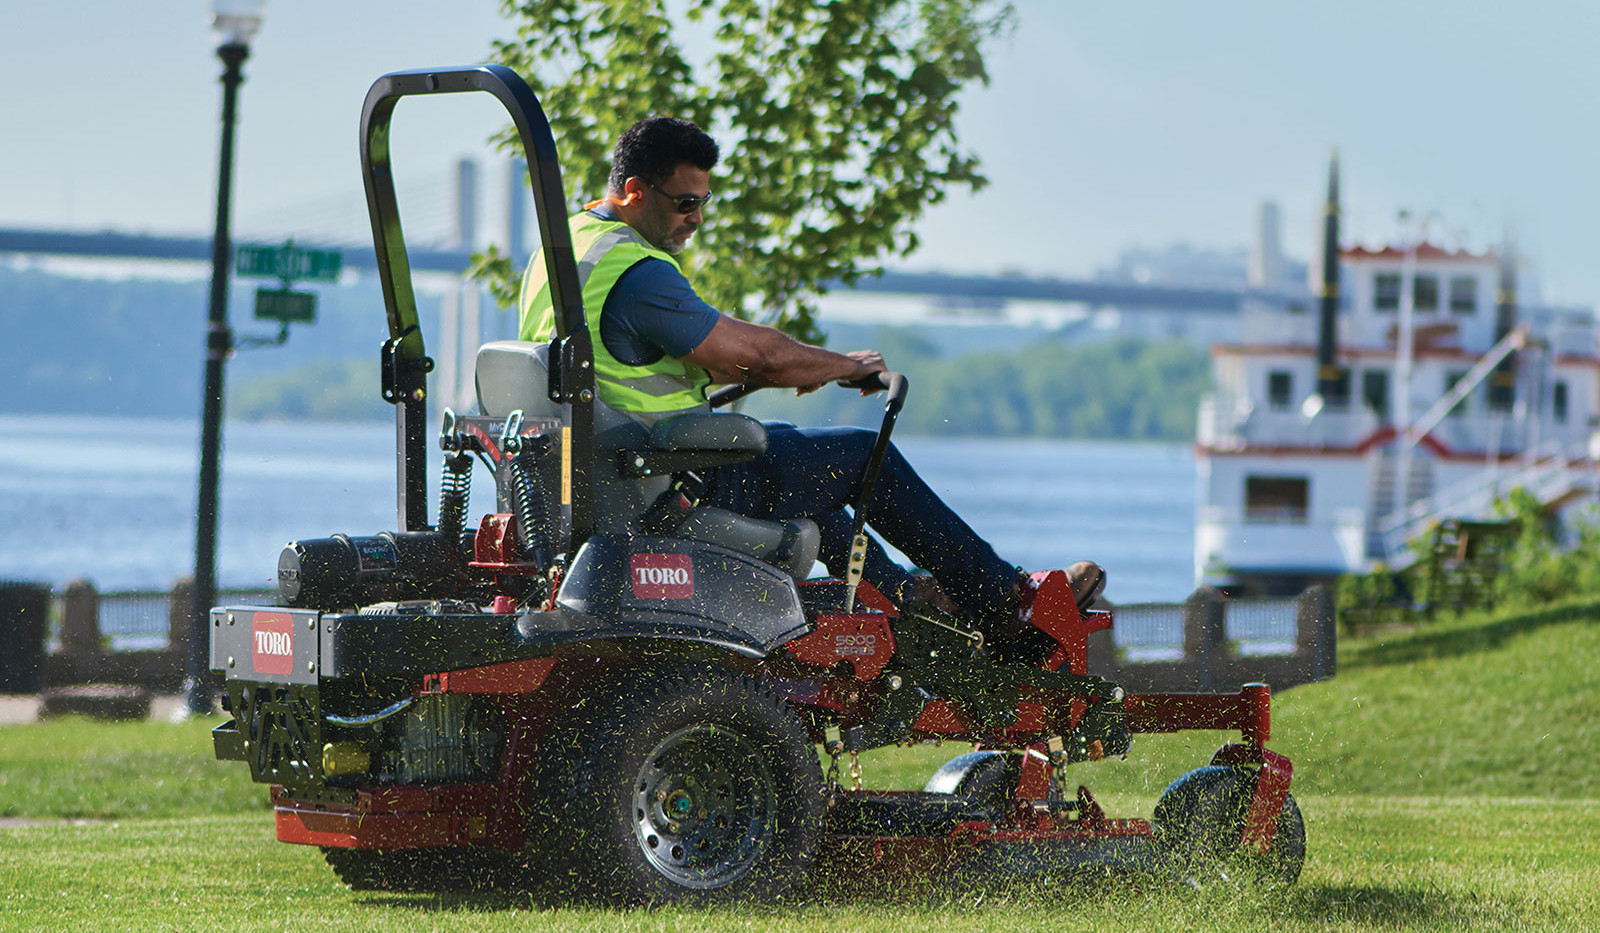 professional-zero-turn-mowers-lc17_3837s